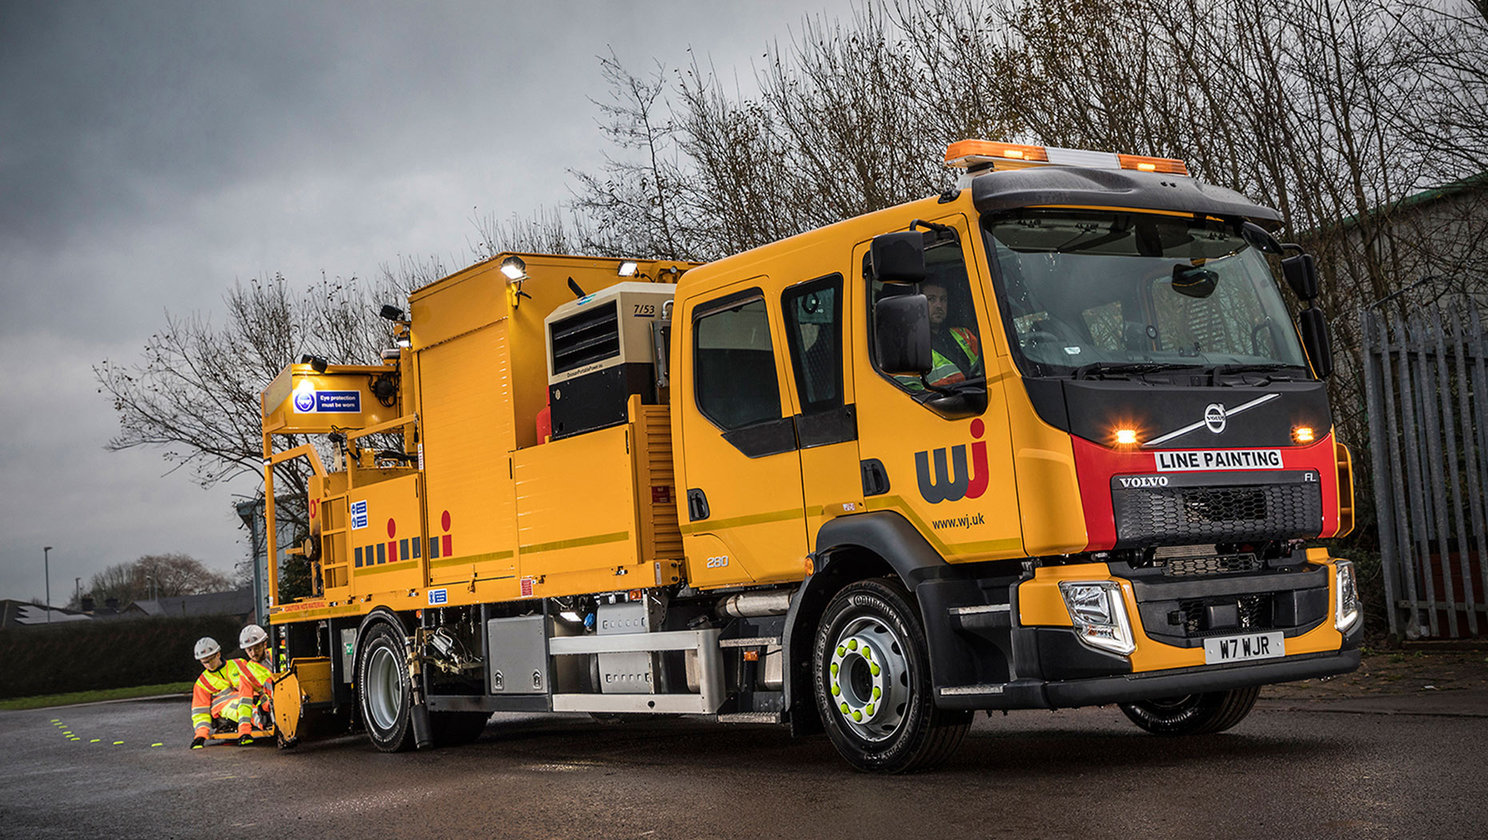 Thomas Hardie Used Volvo Trucks News - Thomas Hardie Used Trucks in Middlewich, Cheshire